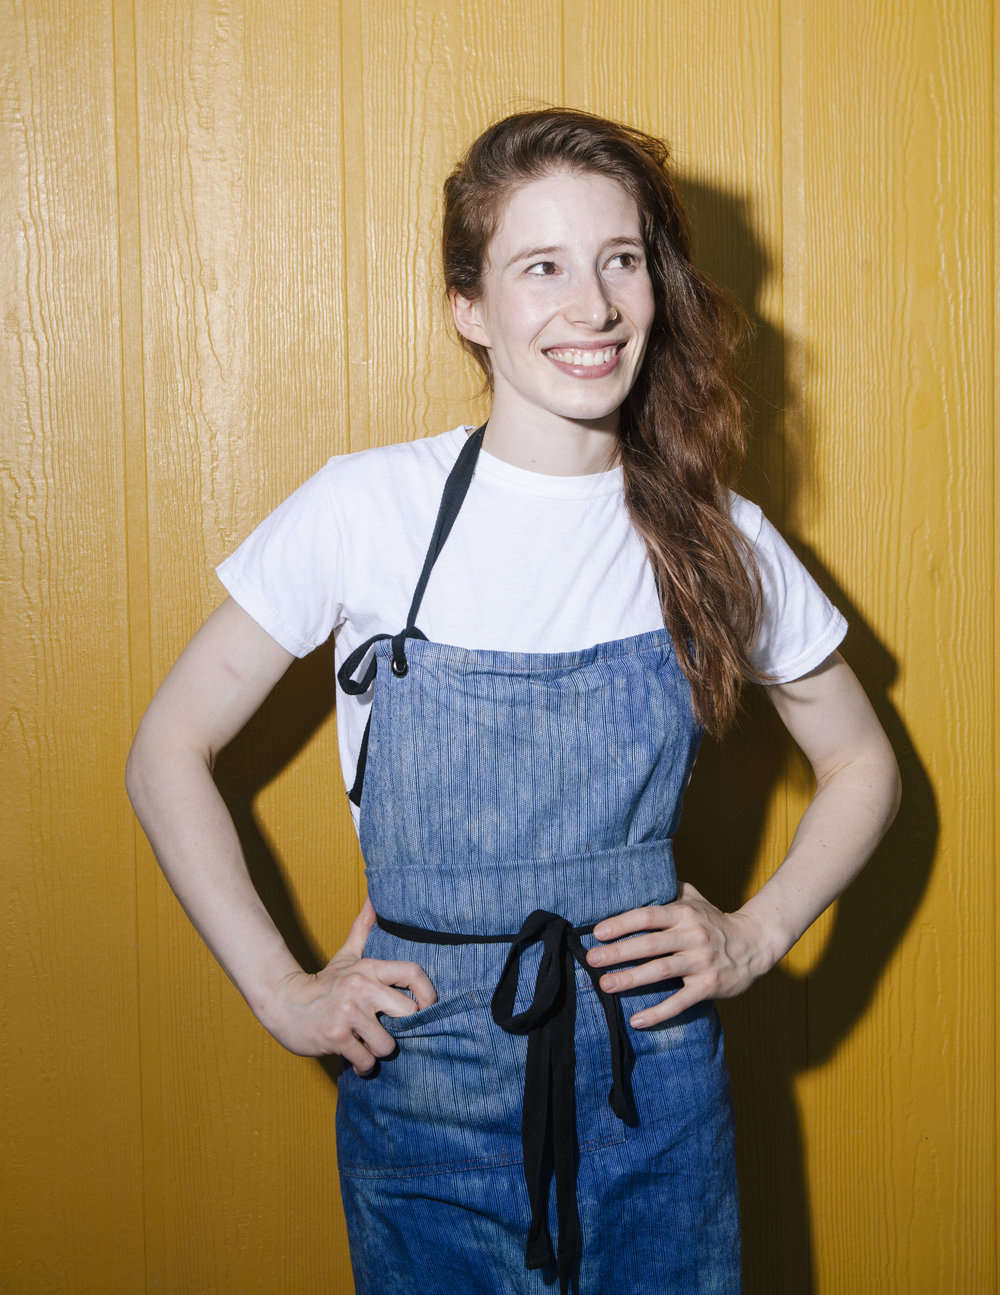 Sarah Hymanson – Chef/Partner  Sarah Hymanson is a Chicago native and an Oberlin College graduate. In NY, Sarah worked at applewood, and both Blue Hill in the city and the famed Blue Hill at Stone Barns. After opening the NY outpost of Mission Chinese with Danny Bowien, she joined Sara Kramer at Glasserie. In 2015, she and Kramer opened Madcapra, a produce-driven falafel shop in the Grand Central Market. Sarah loves all funky and fermented foods, documentaries, sunscreen, and capybaras.